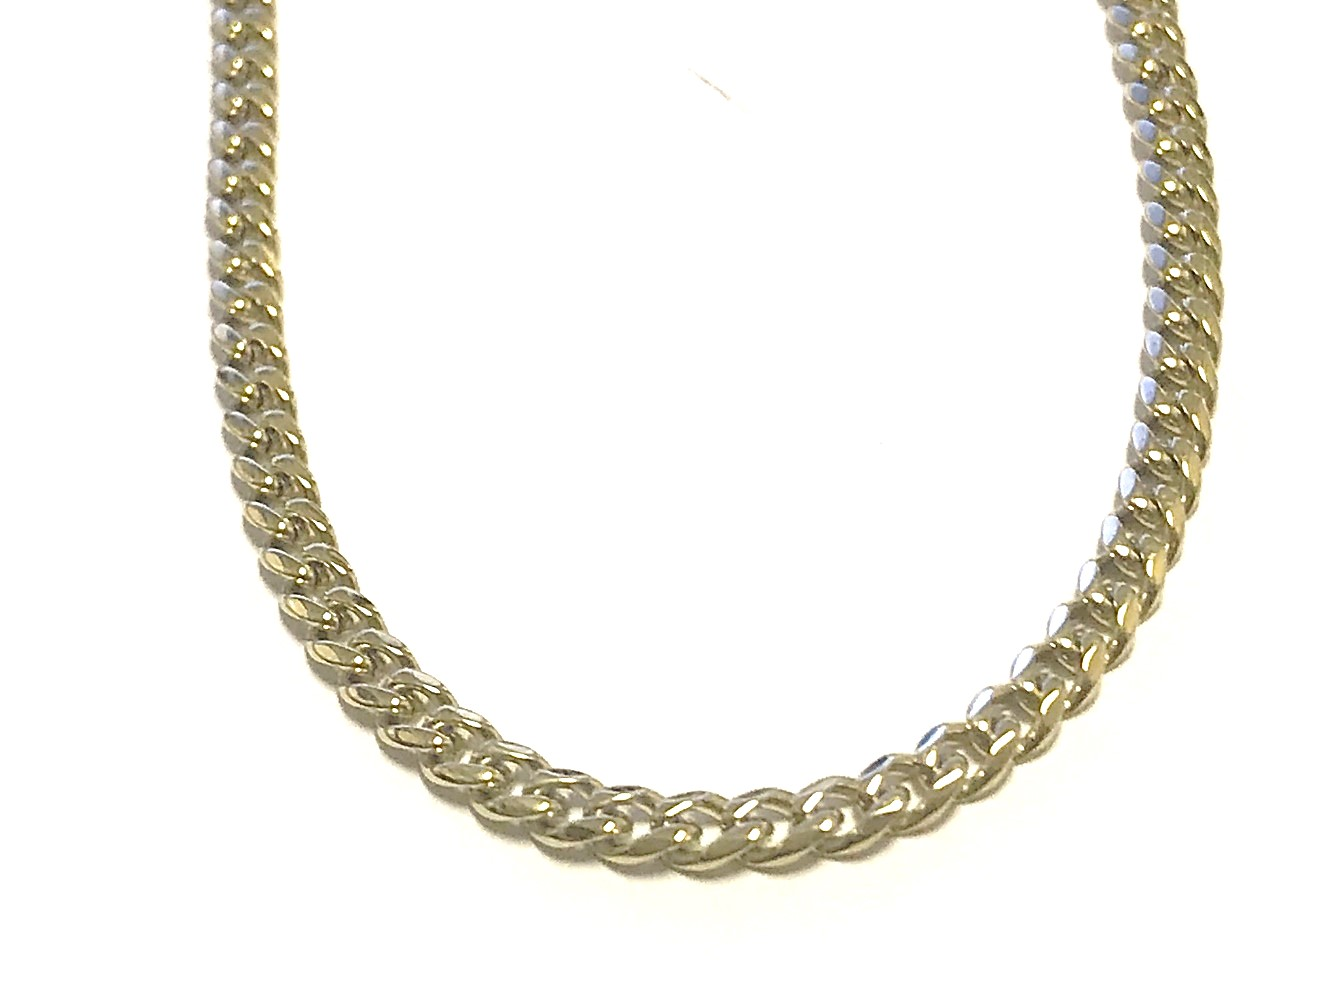 20'' Curb chain for men - Yellow stainless steel